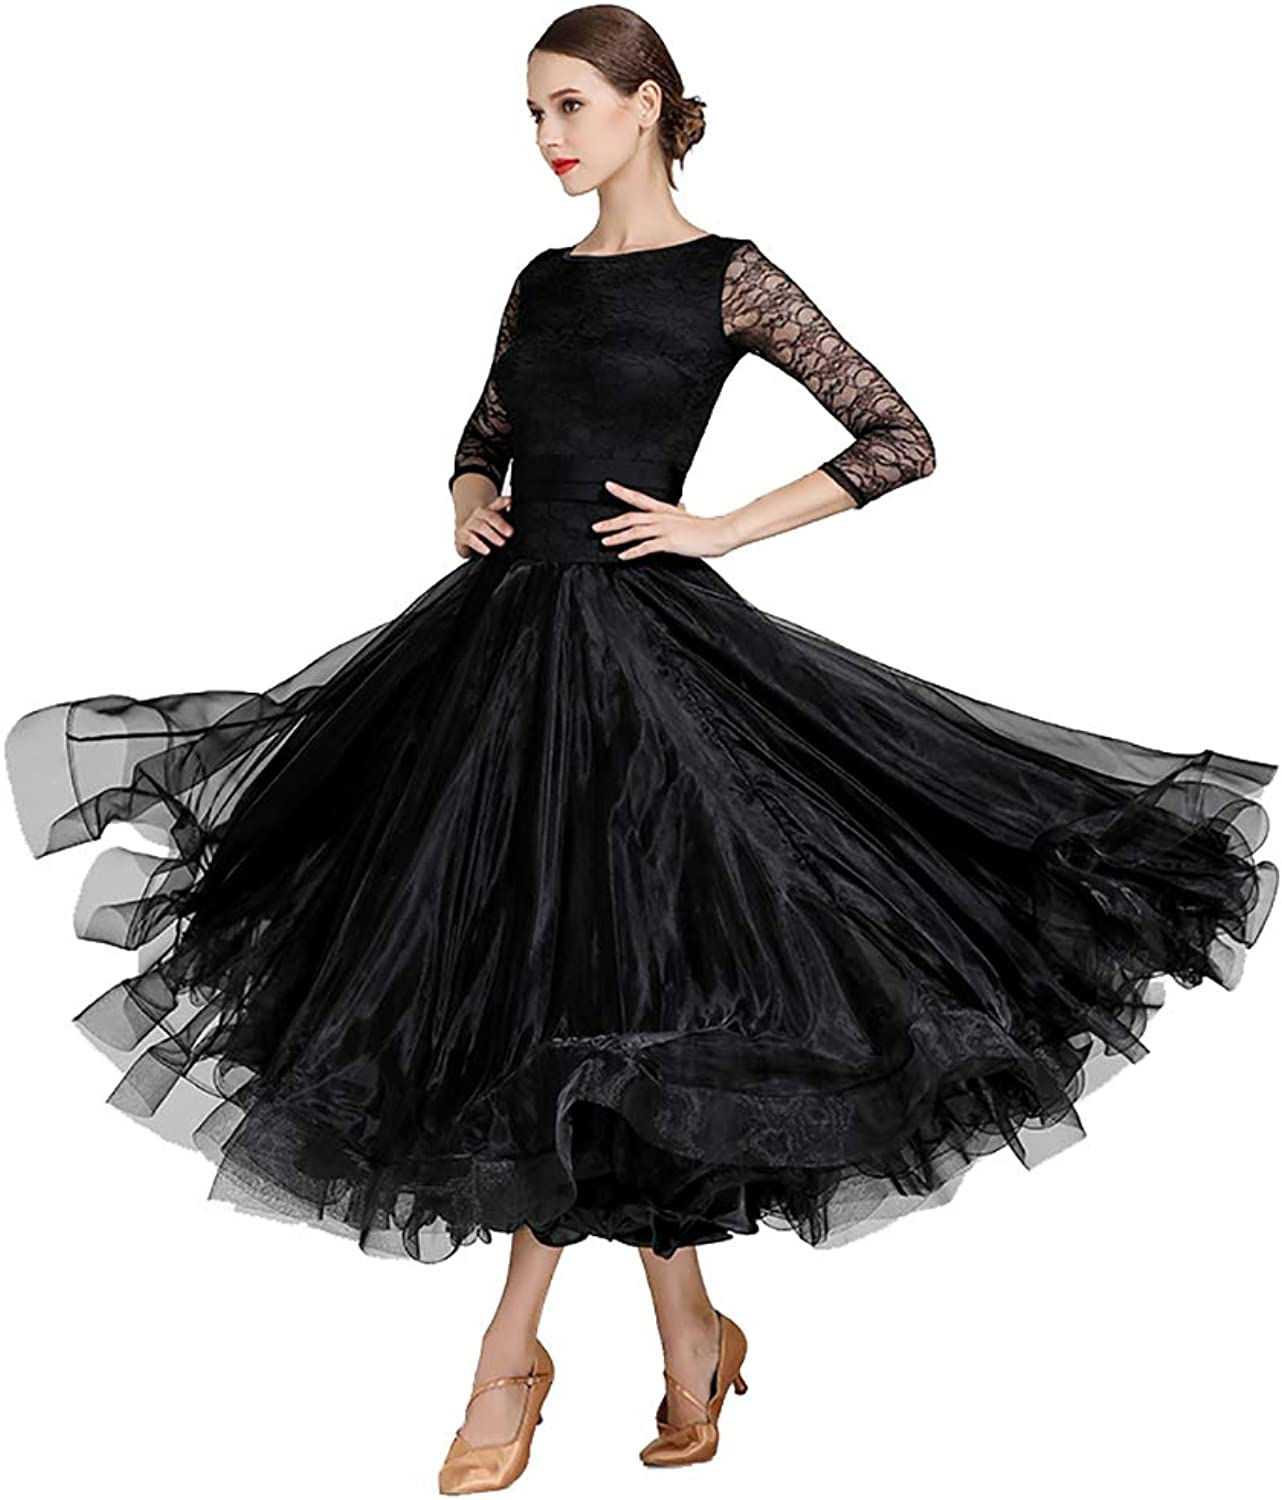 Women's Lace Dance Skirt Pleated Long Sleeves Adult Dresses Round Neck Flexible Stage Costumes Elegant Party Competition Dress